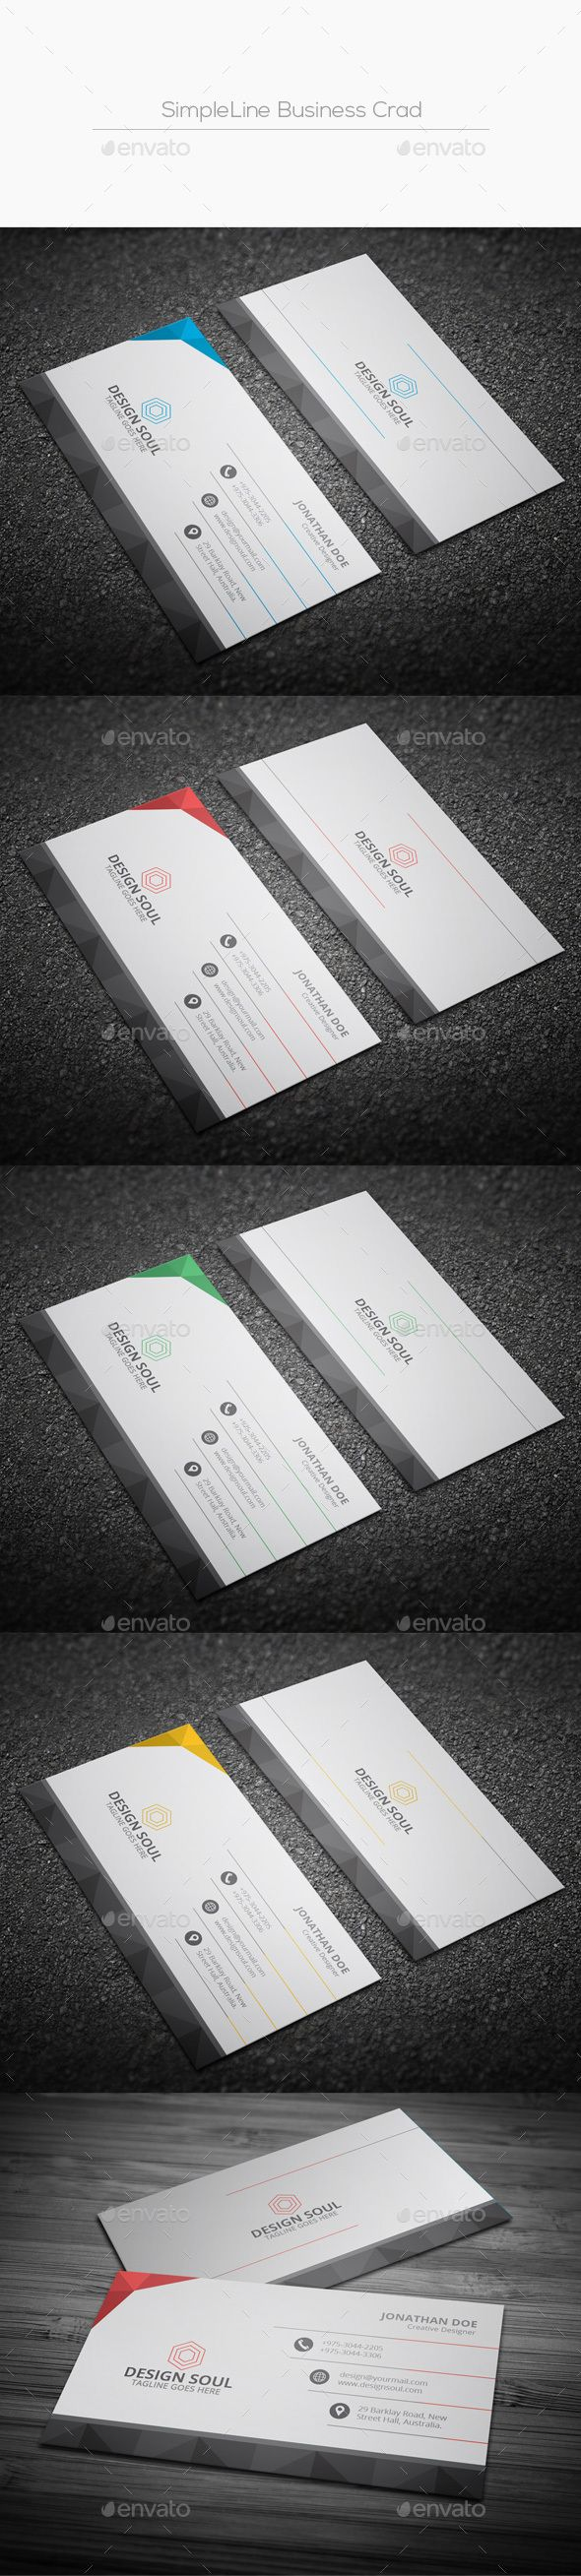 379 Best Business Cards Images On Pinterest Business Card Design